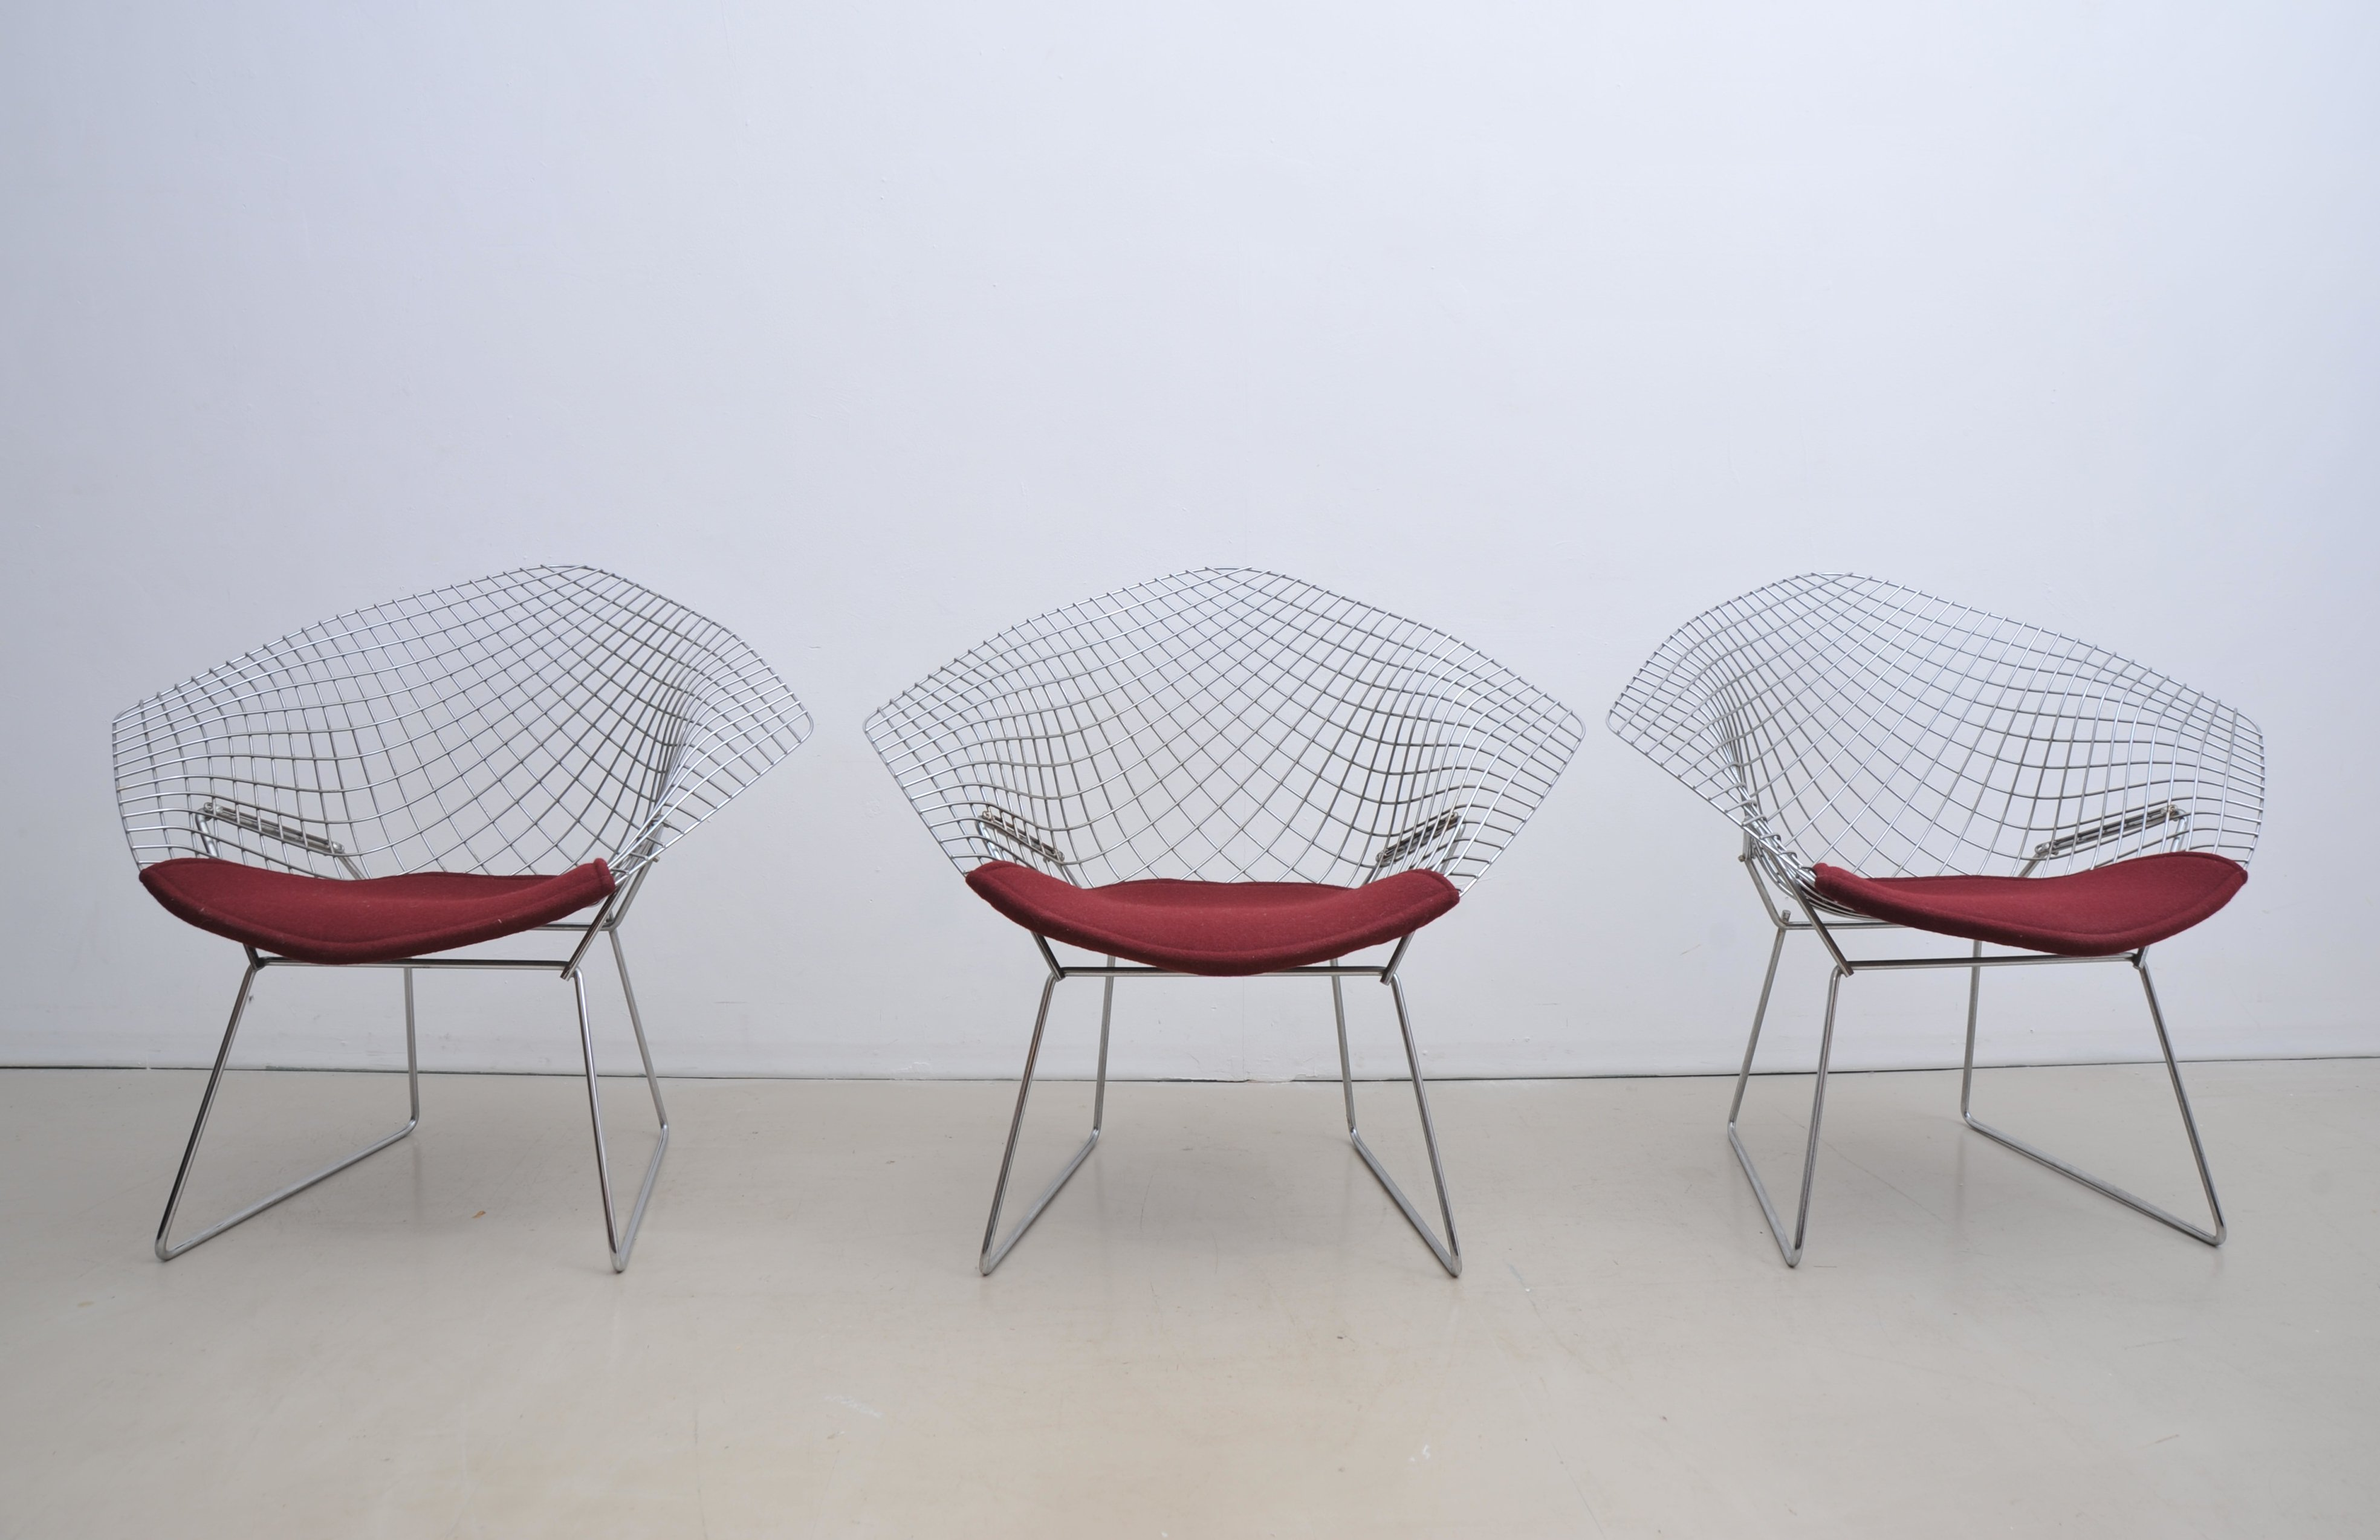 Groovy 5 X Diamond Lounge Chair By Harry Bertoia For Knoll Alphanode Cool Chair Designs And Ideas Alphanodeonline